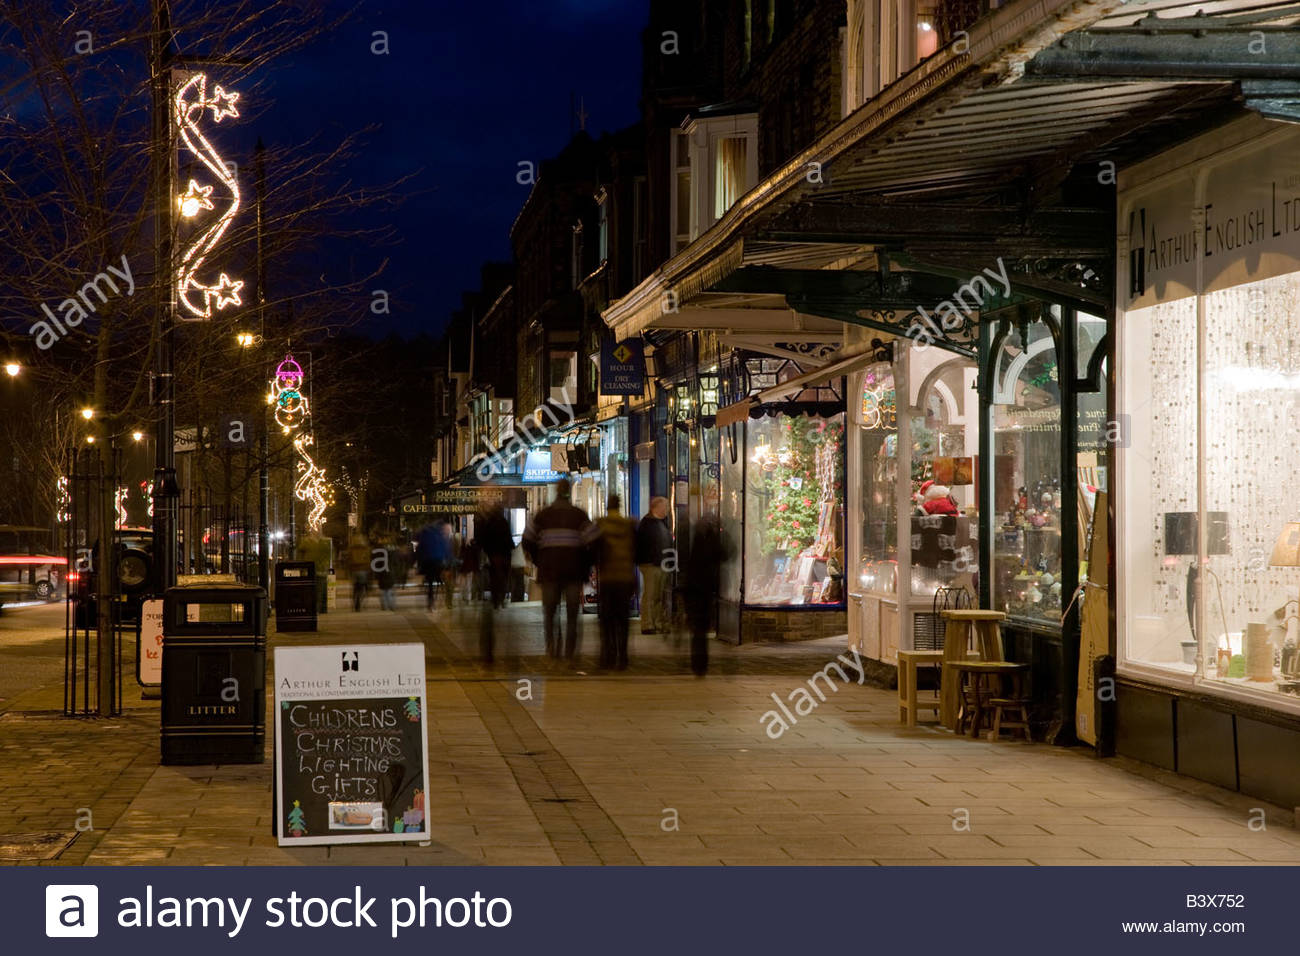 ilkley town centre stock photos u0026 ilkley town centre stock images